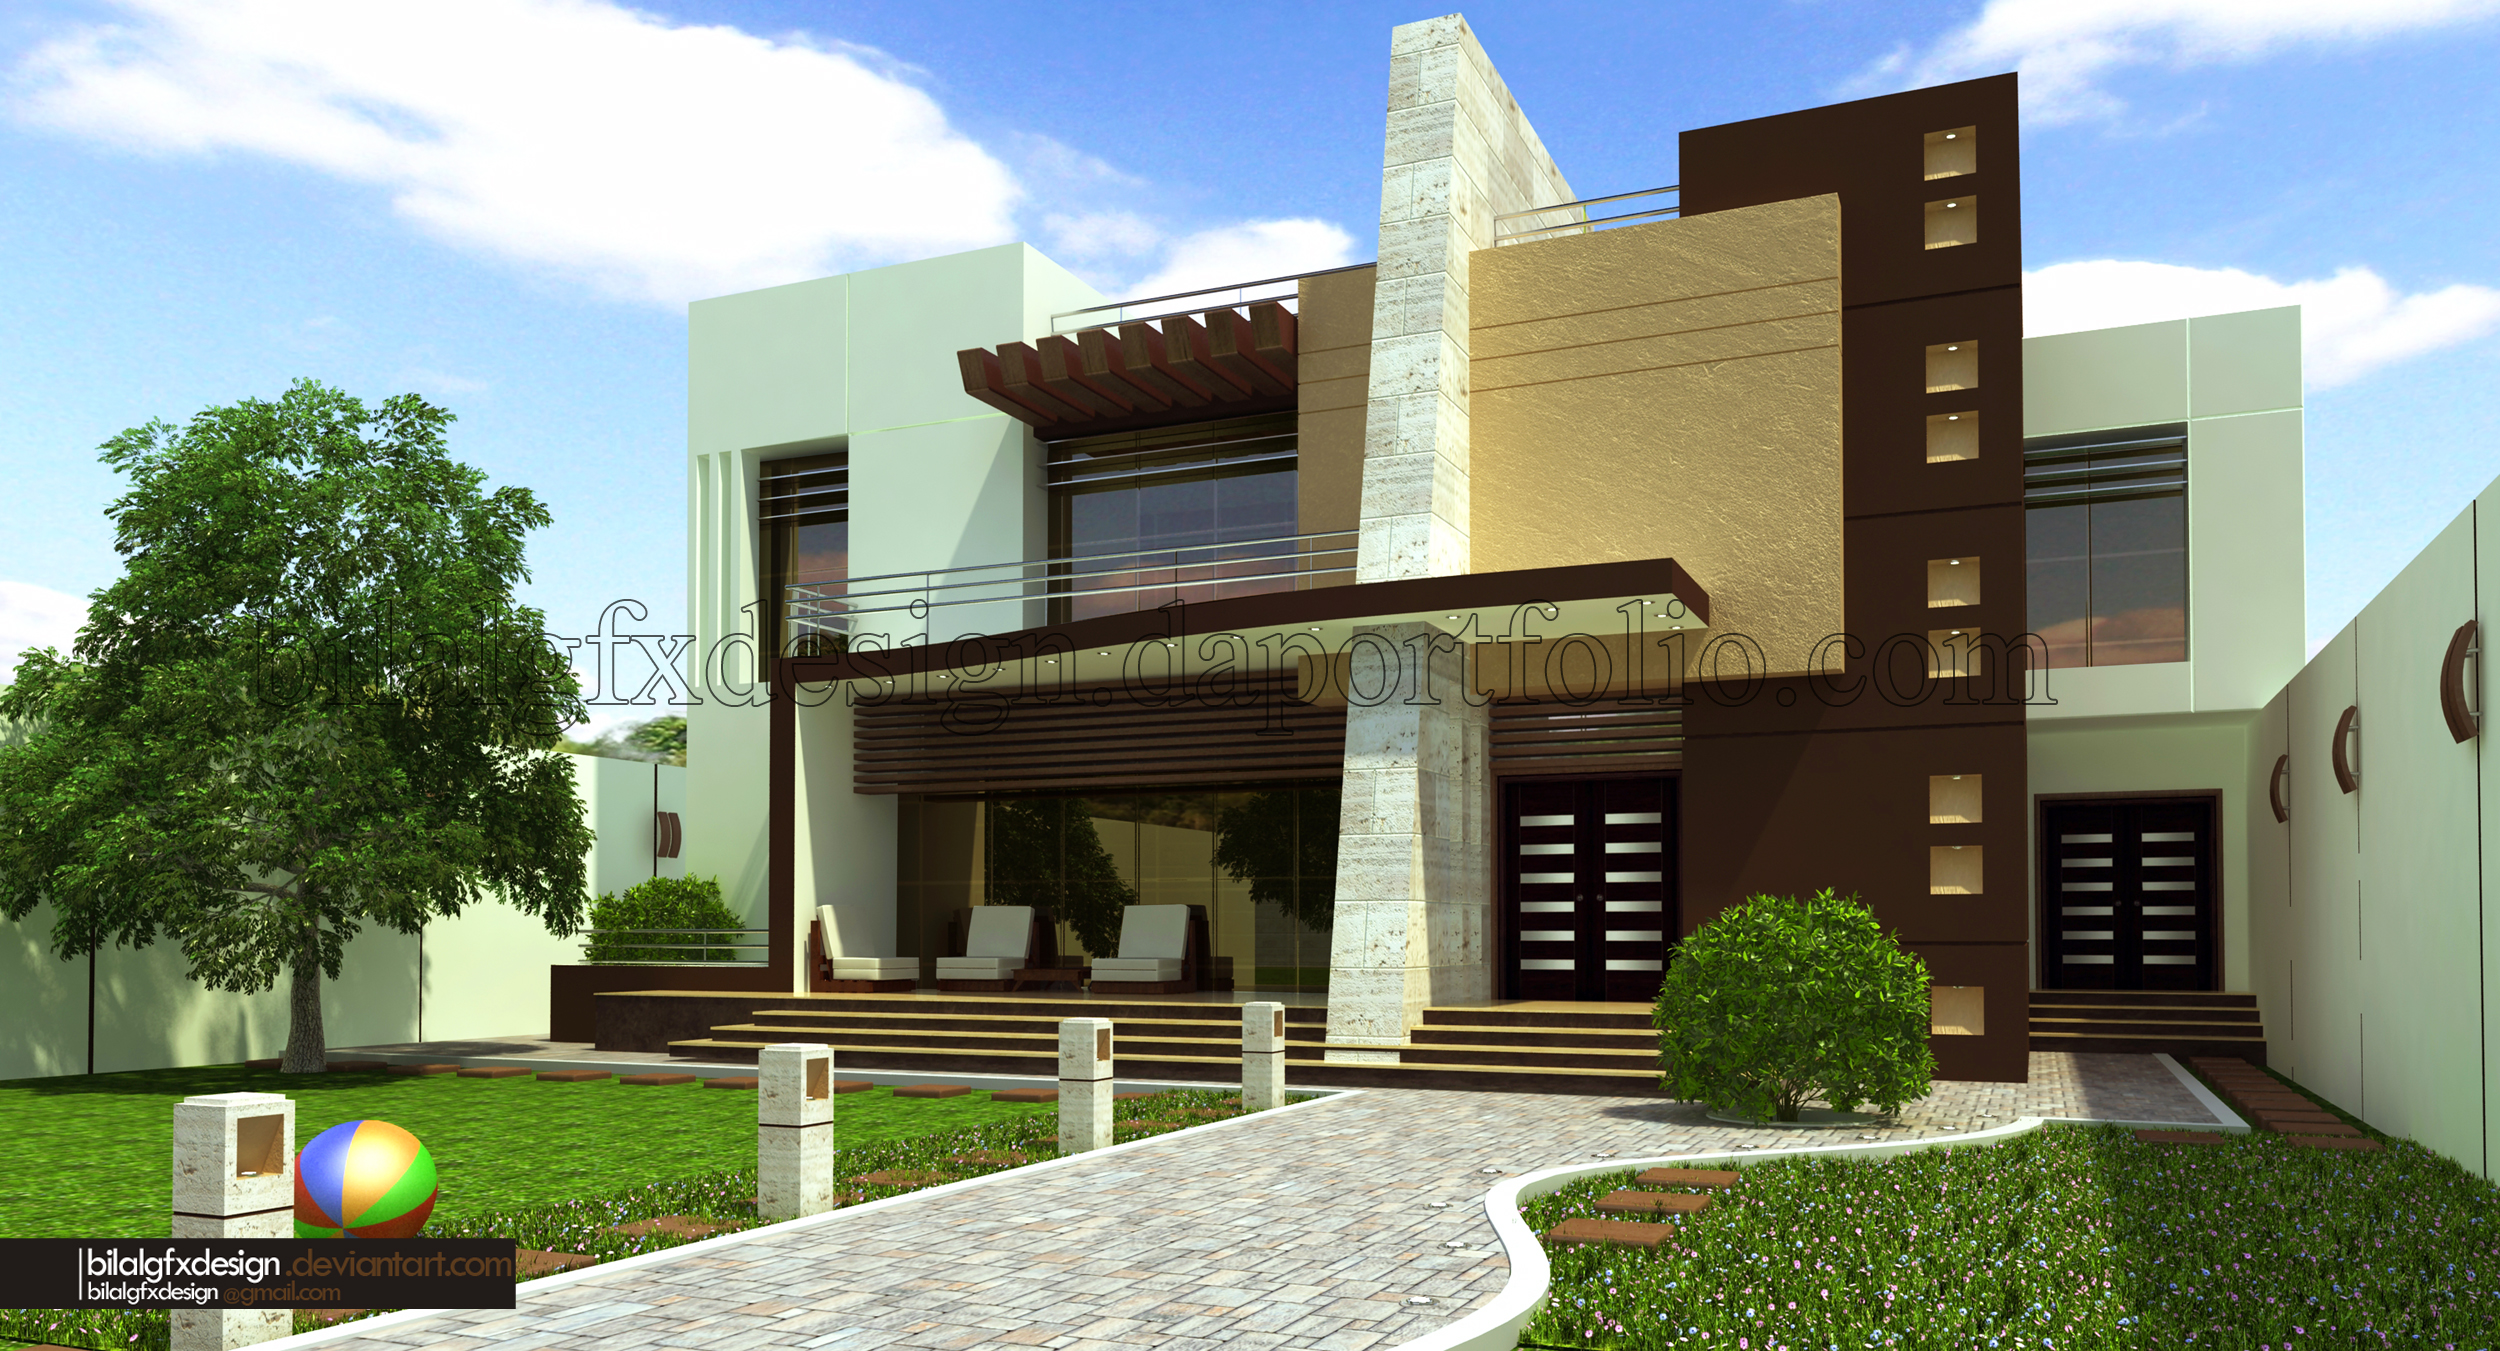 Modern villa 1 by bilalgfxdesign on deviantart for Contemporary villa plans